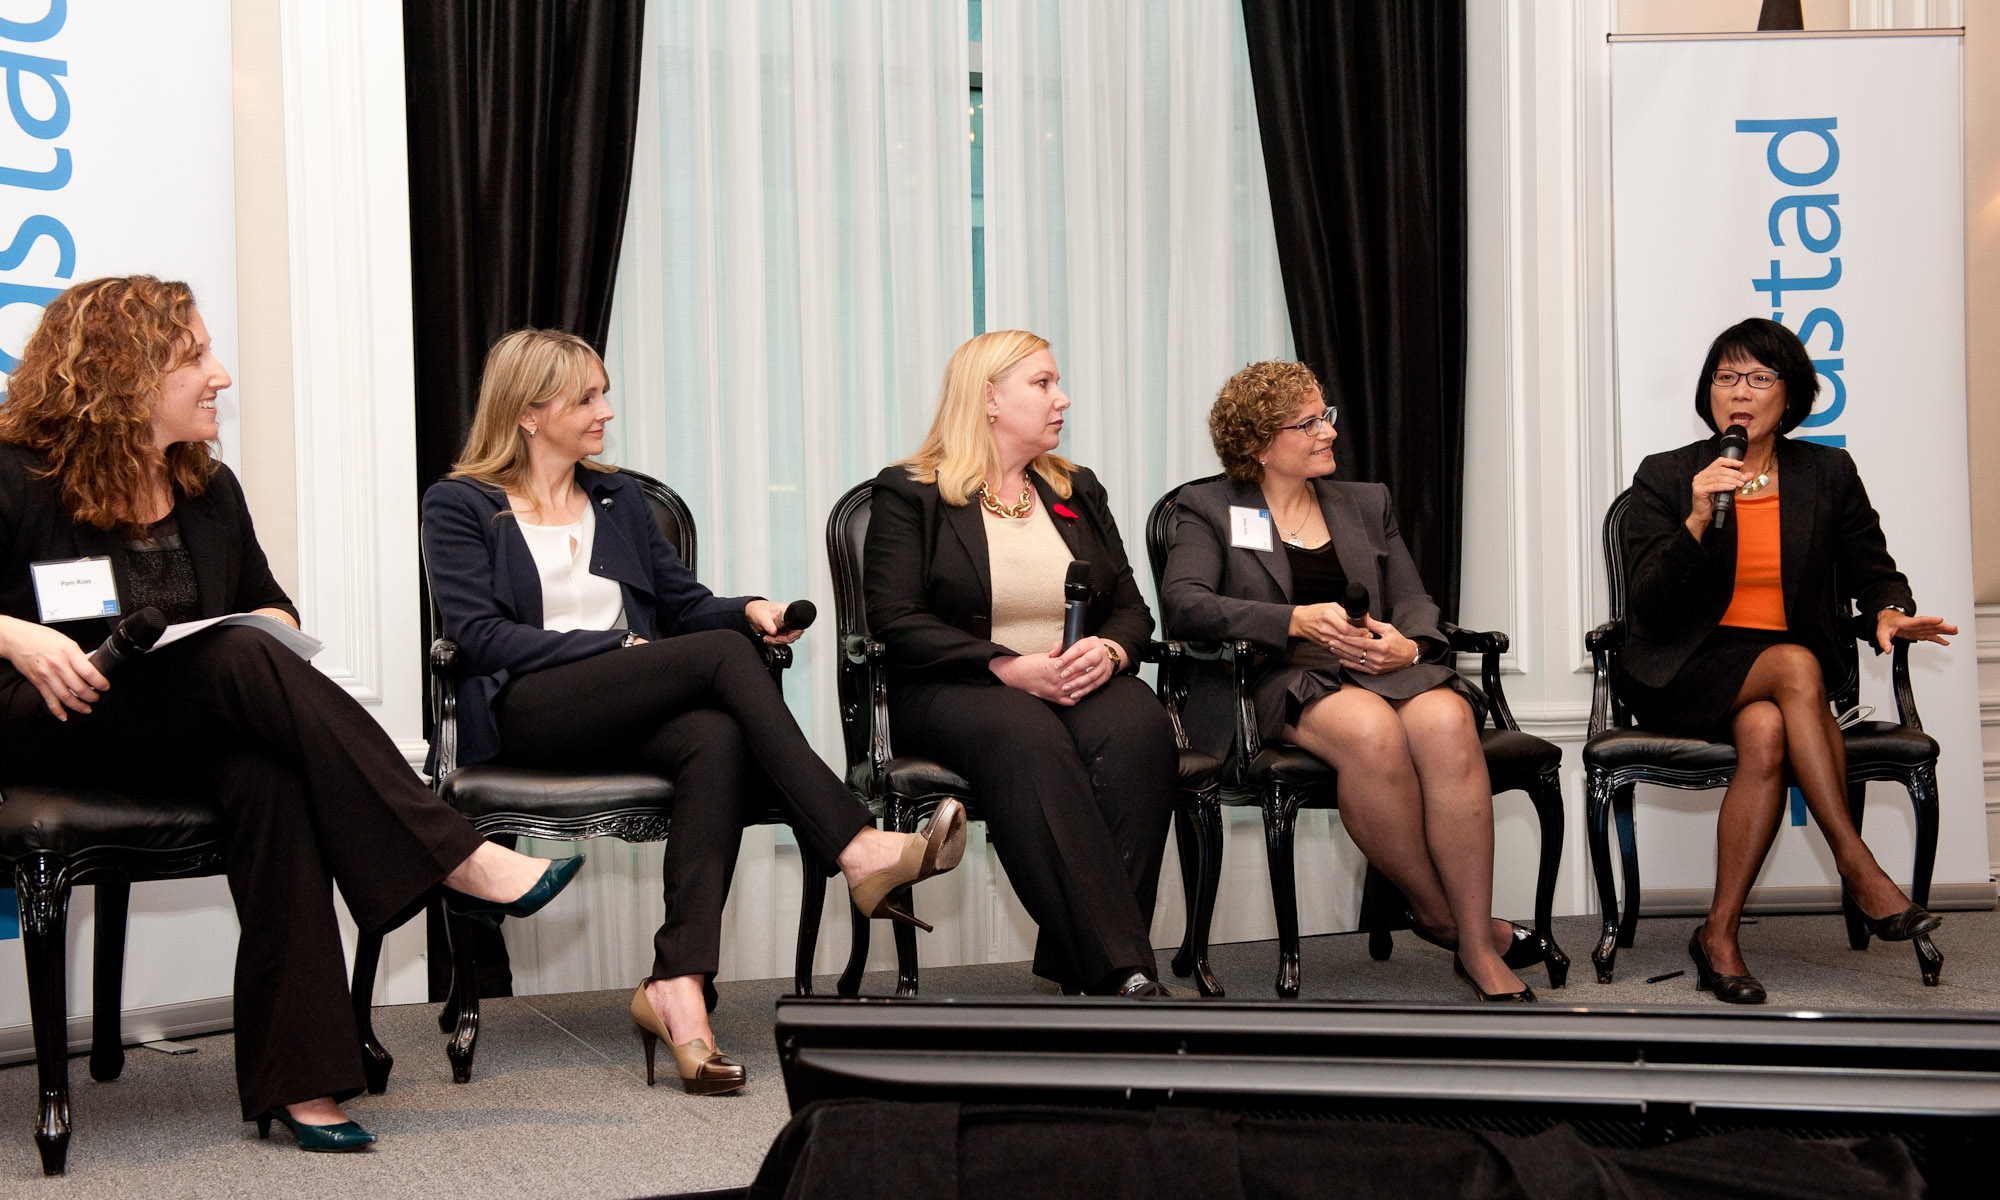 An all-women panel. Photo credit: Randstad Canda [ CC BY 2.0 ],  via Flickr  (cropped)